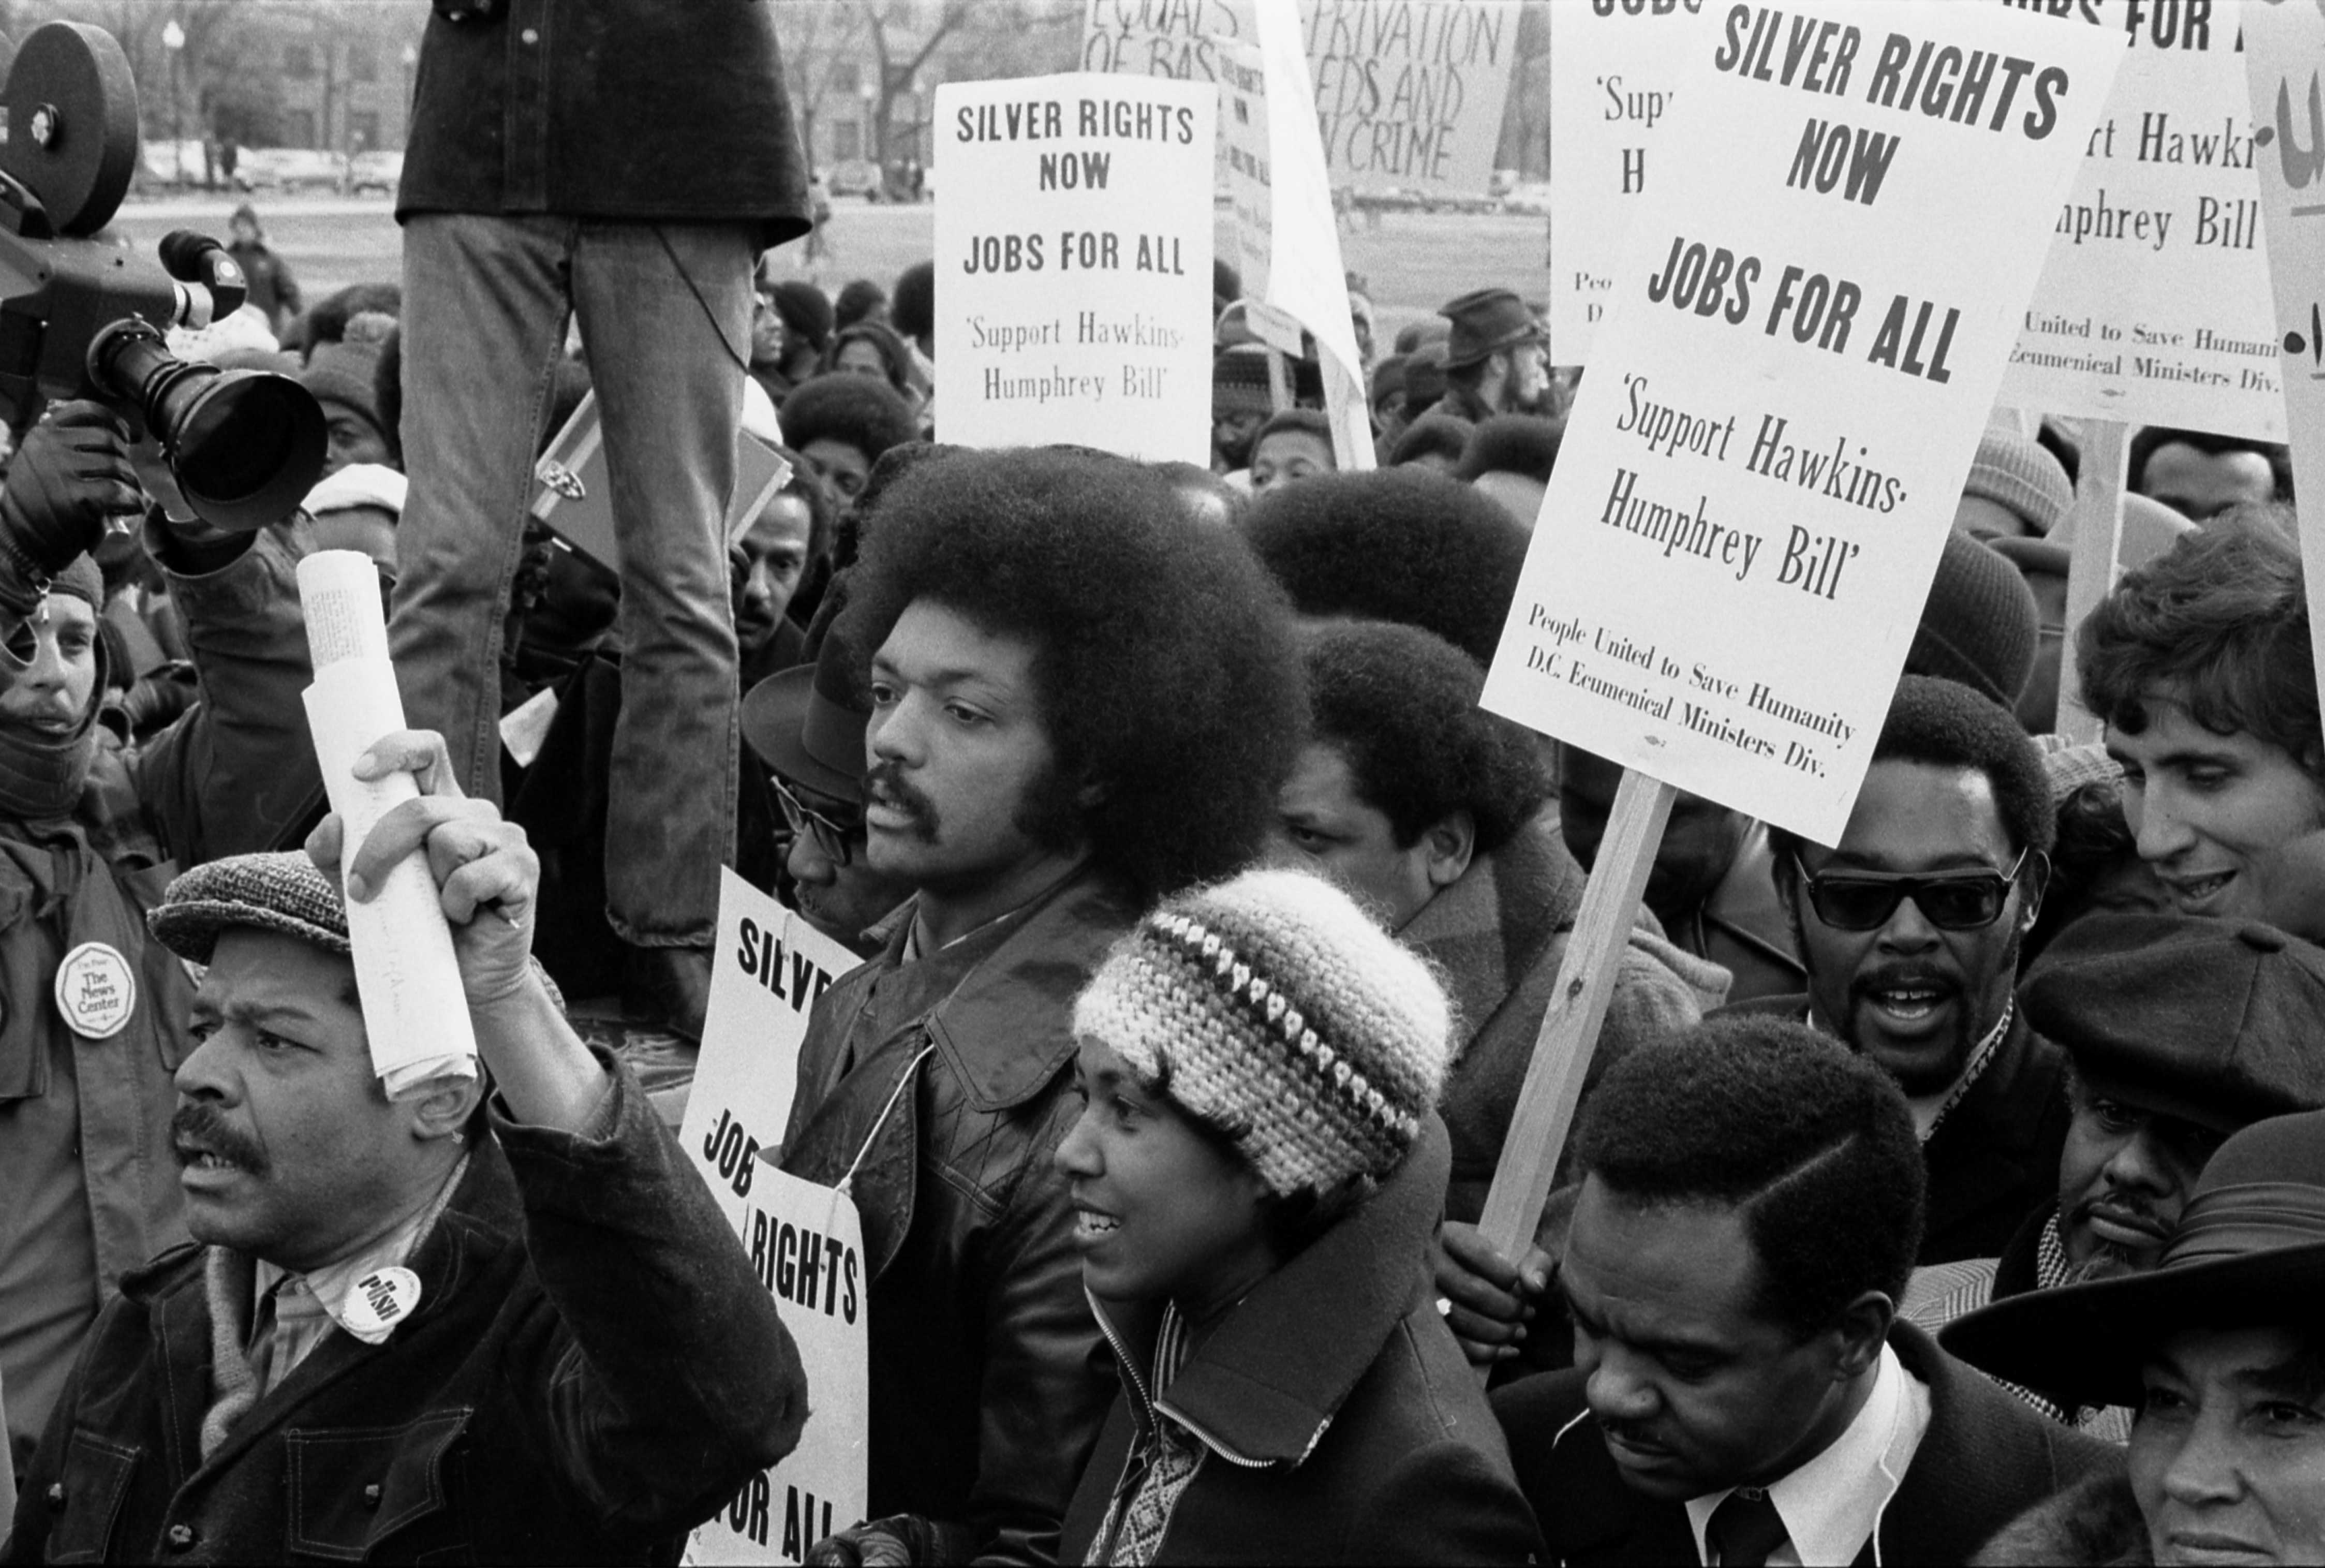 Description Jesse Jackson participating in a rally, January 15, 1975